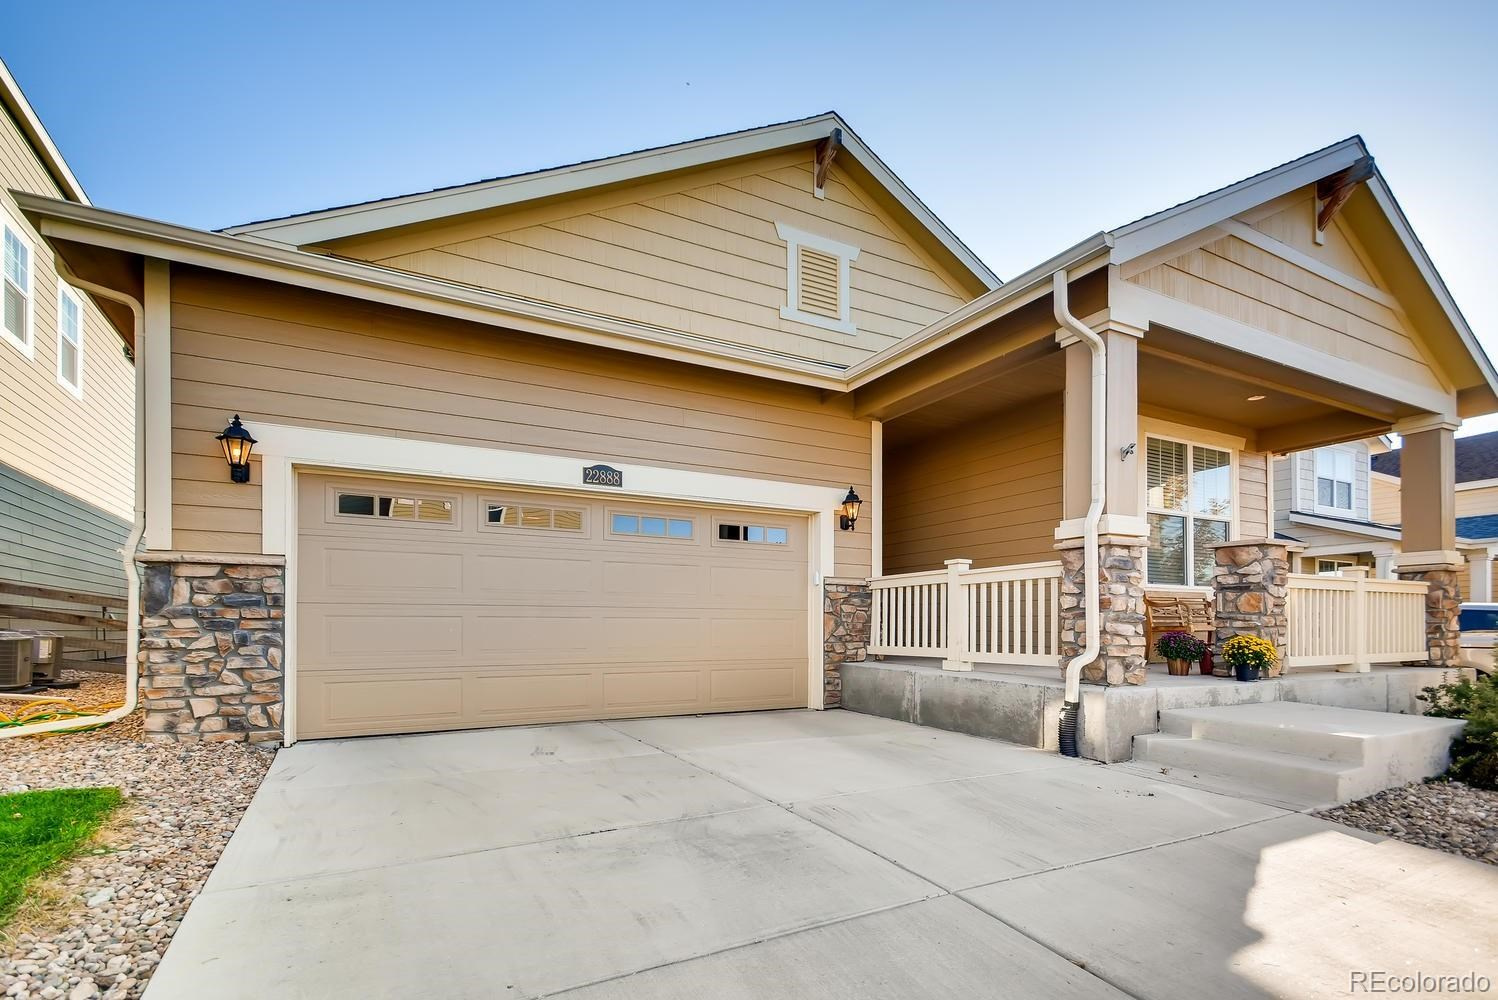 MLS# 9346696 - 2 - 22888 E Saratoga Place, Aurora, CO 80015